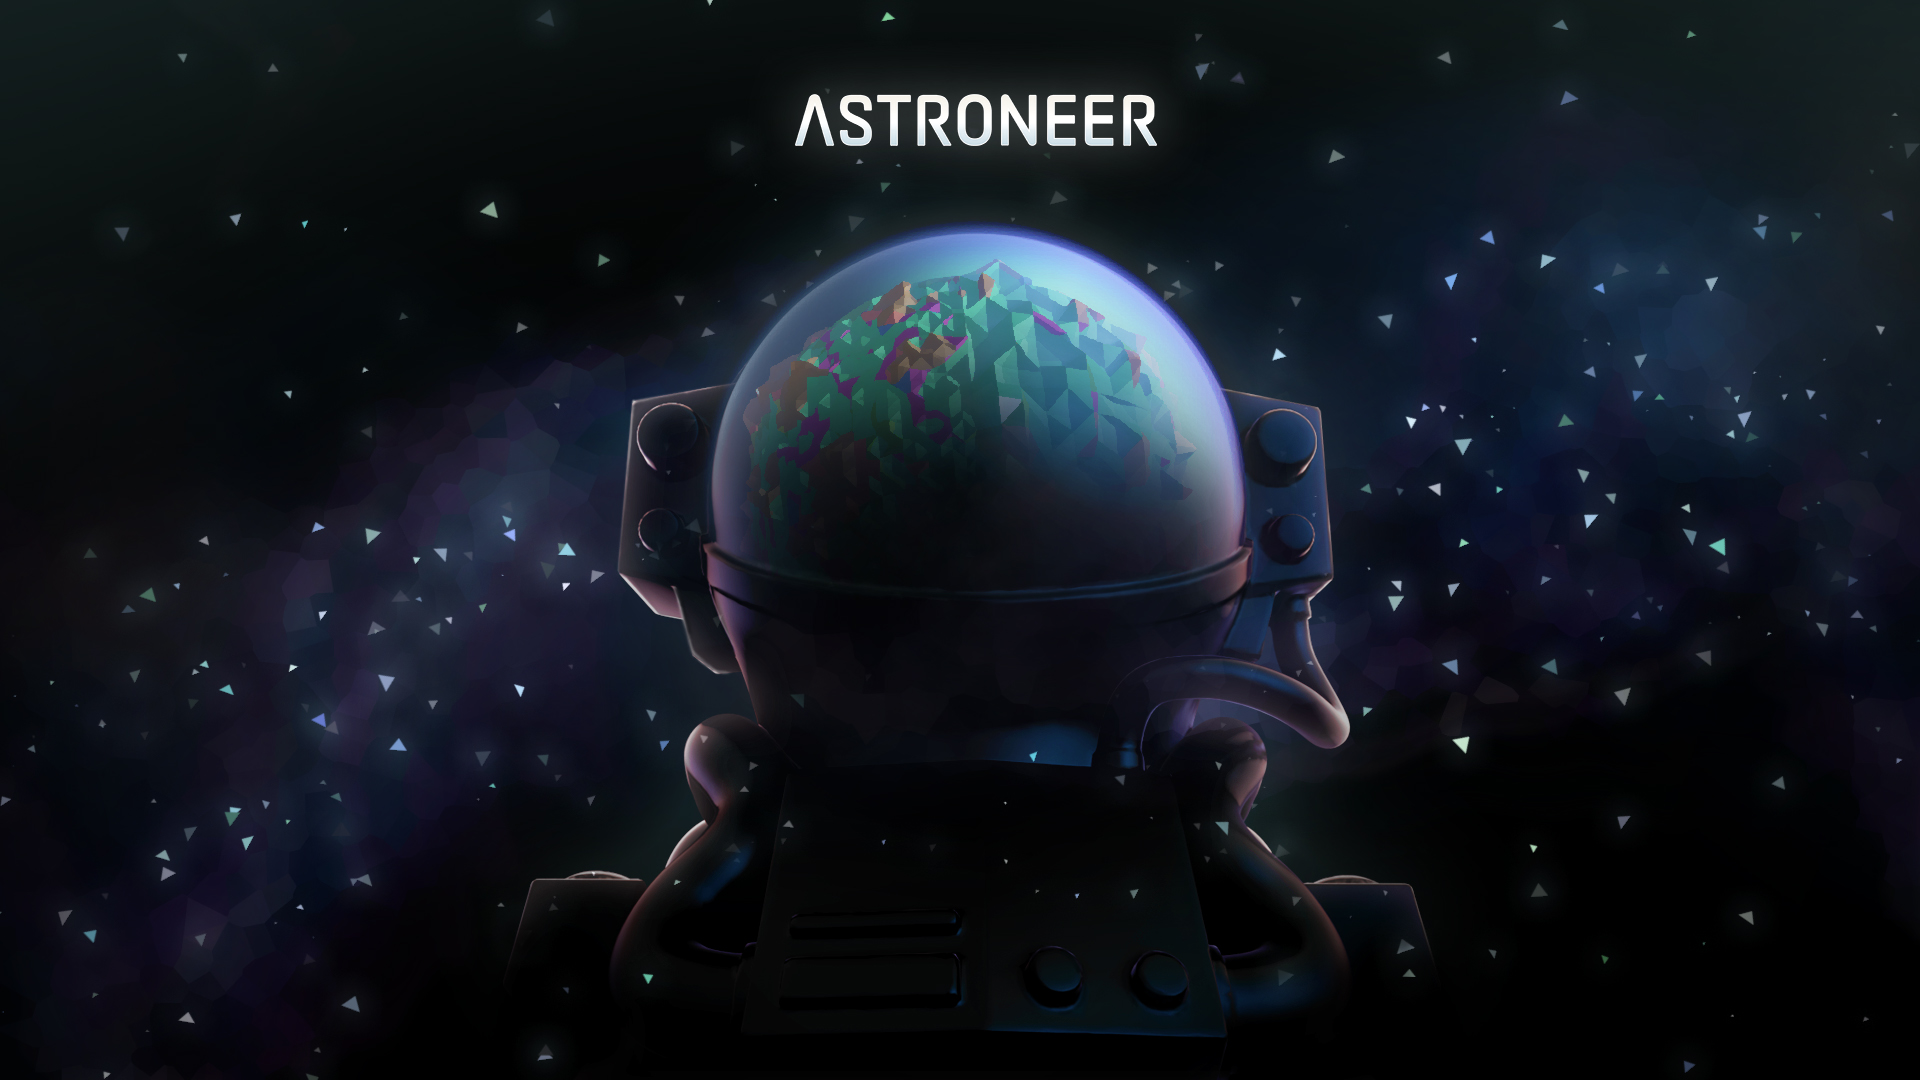 Hd Knife Wallpaper Custom Astroneer Figure General Discussion System Era